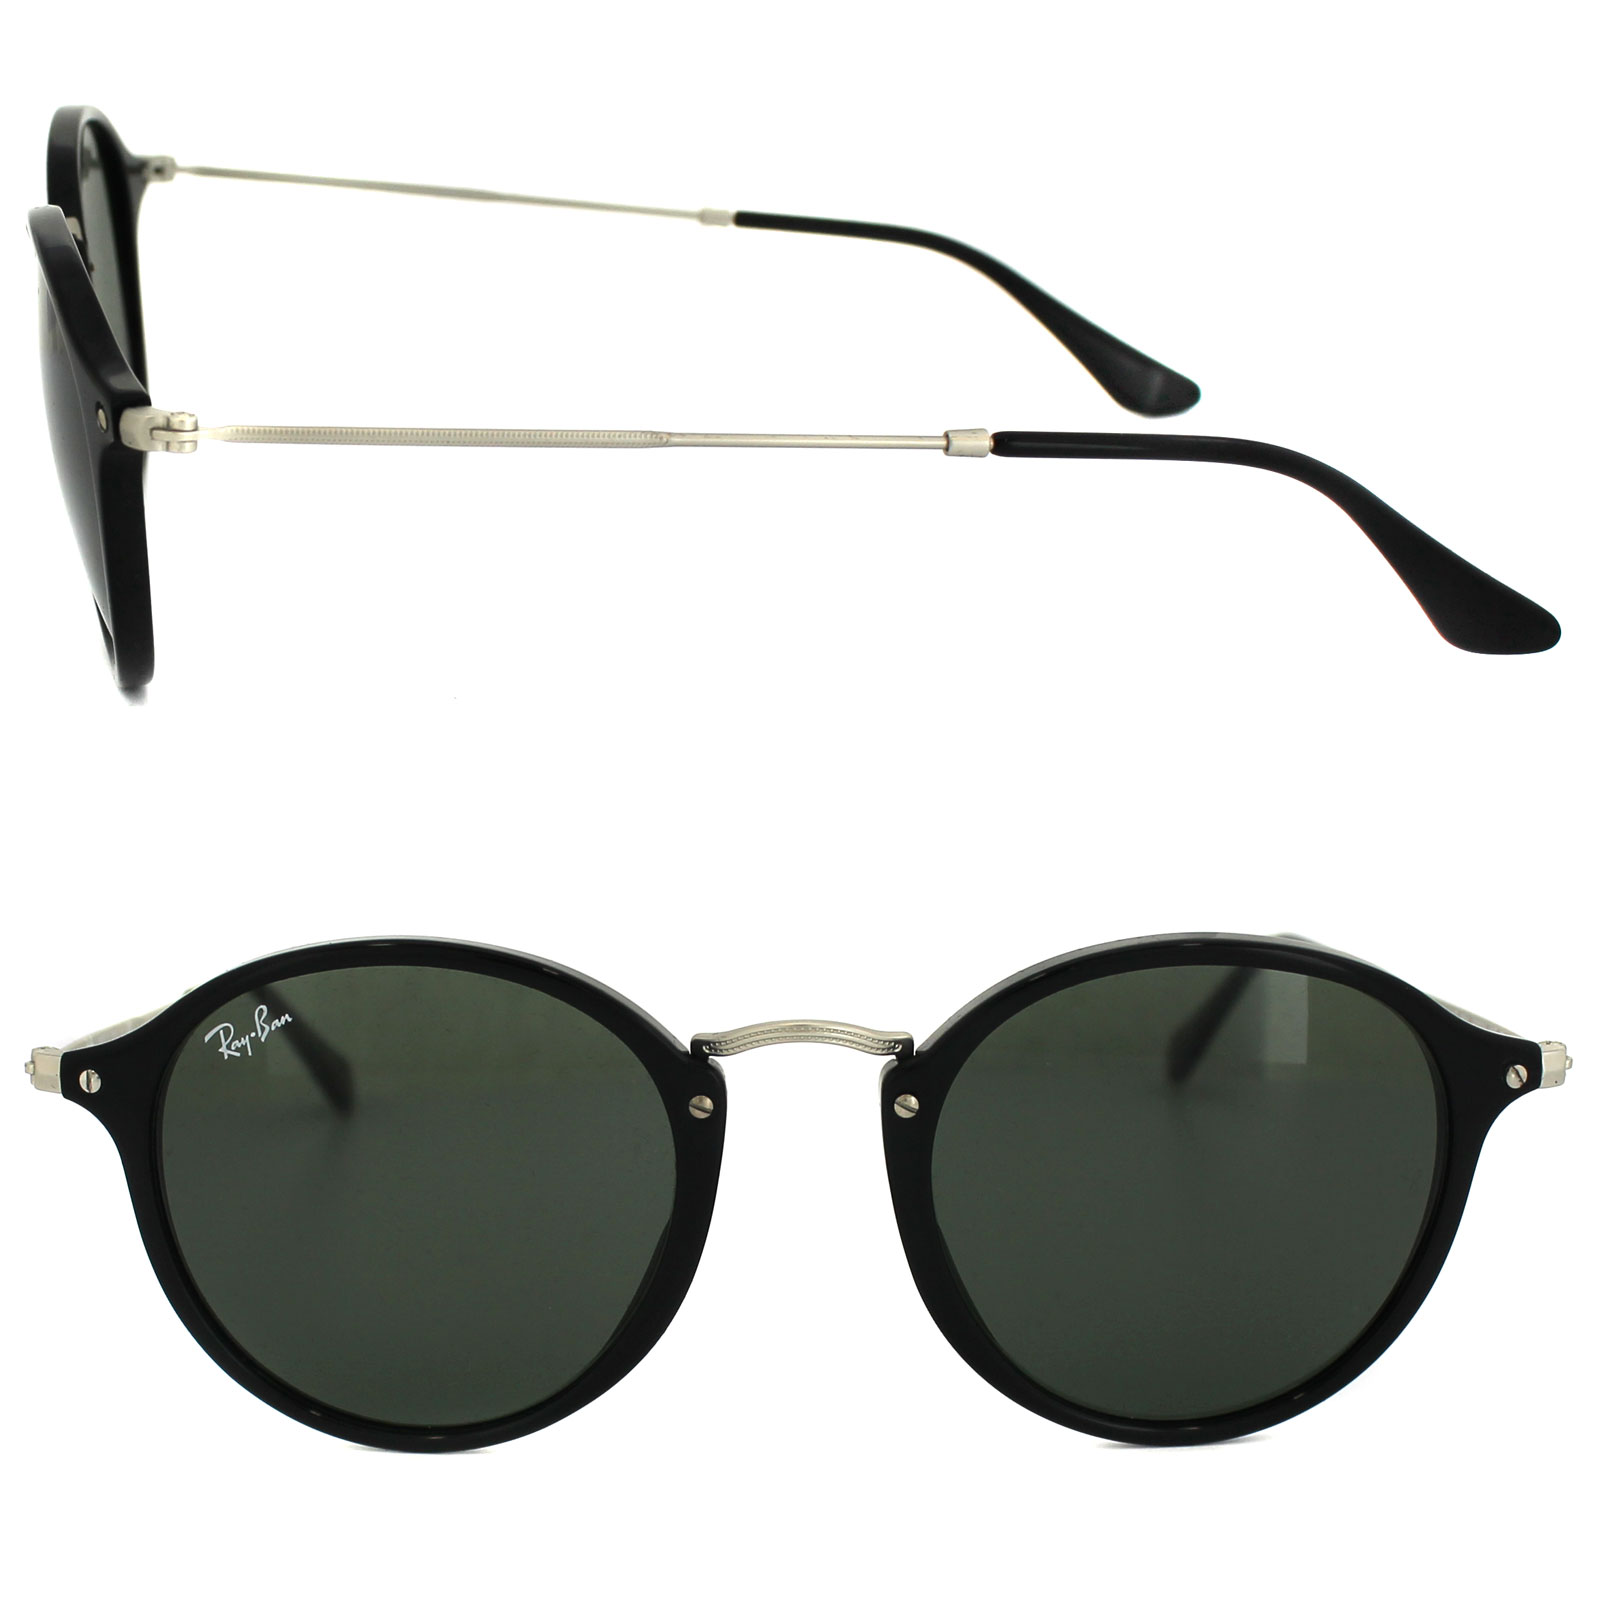 821d54ee8c20 Sonnenbrille Ray Ban Round